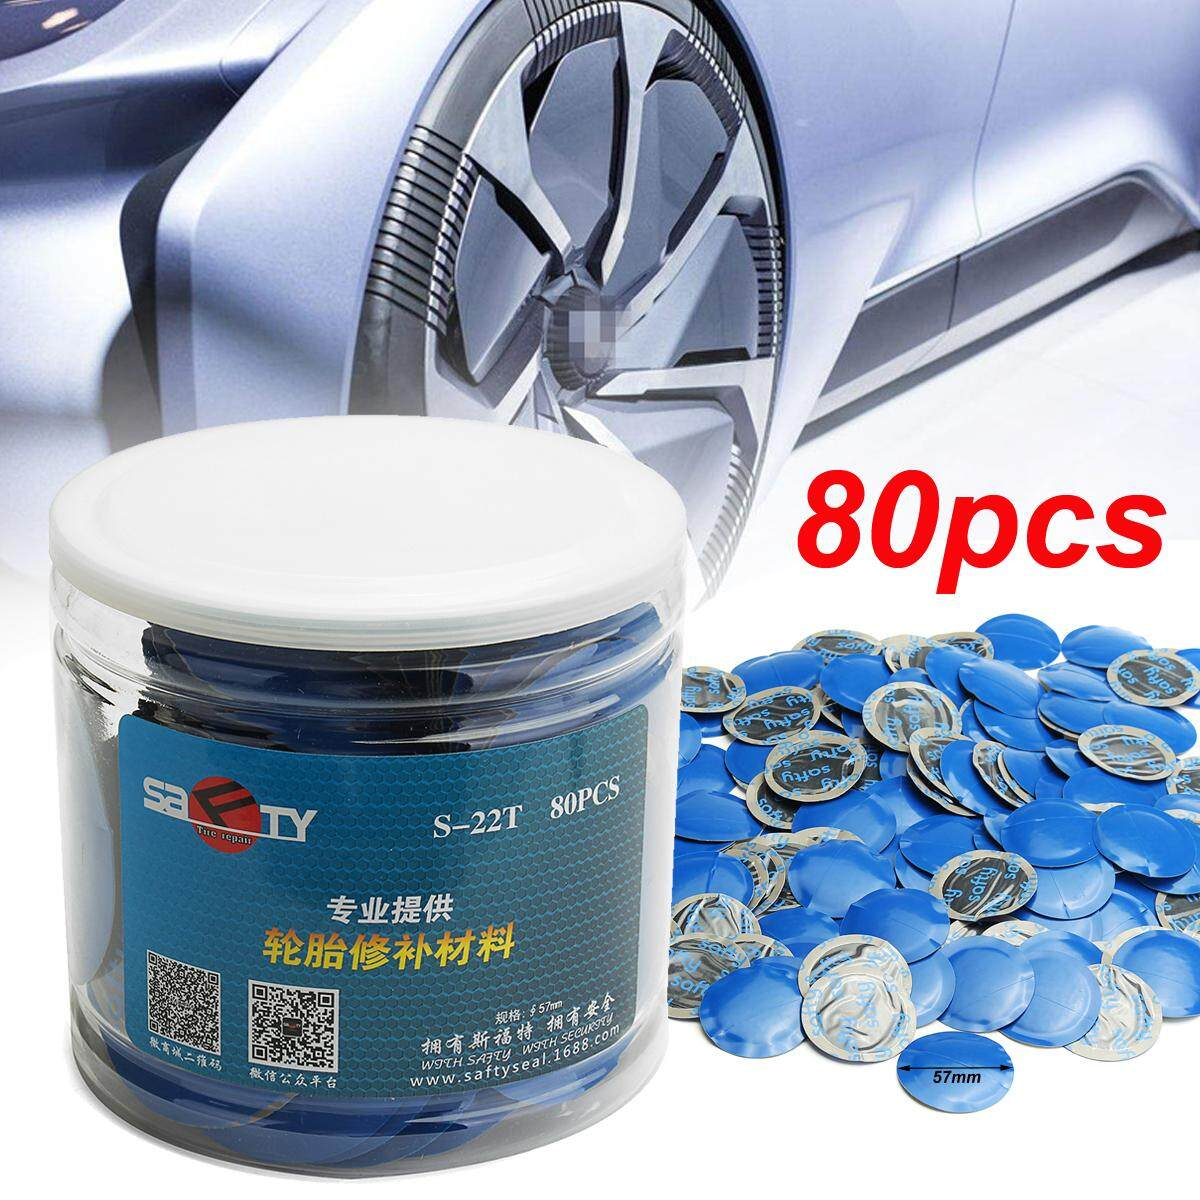 Universal 80pcs 57mm Natural Rubber Wired Tyre Puncture Repair Mushroom Patch By Autoleader.